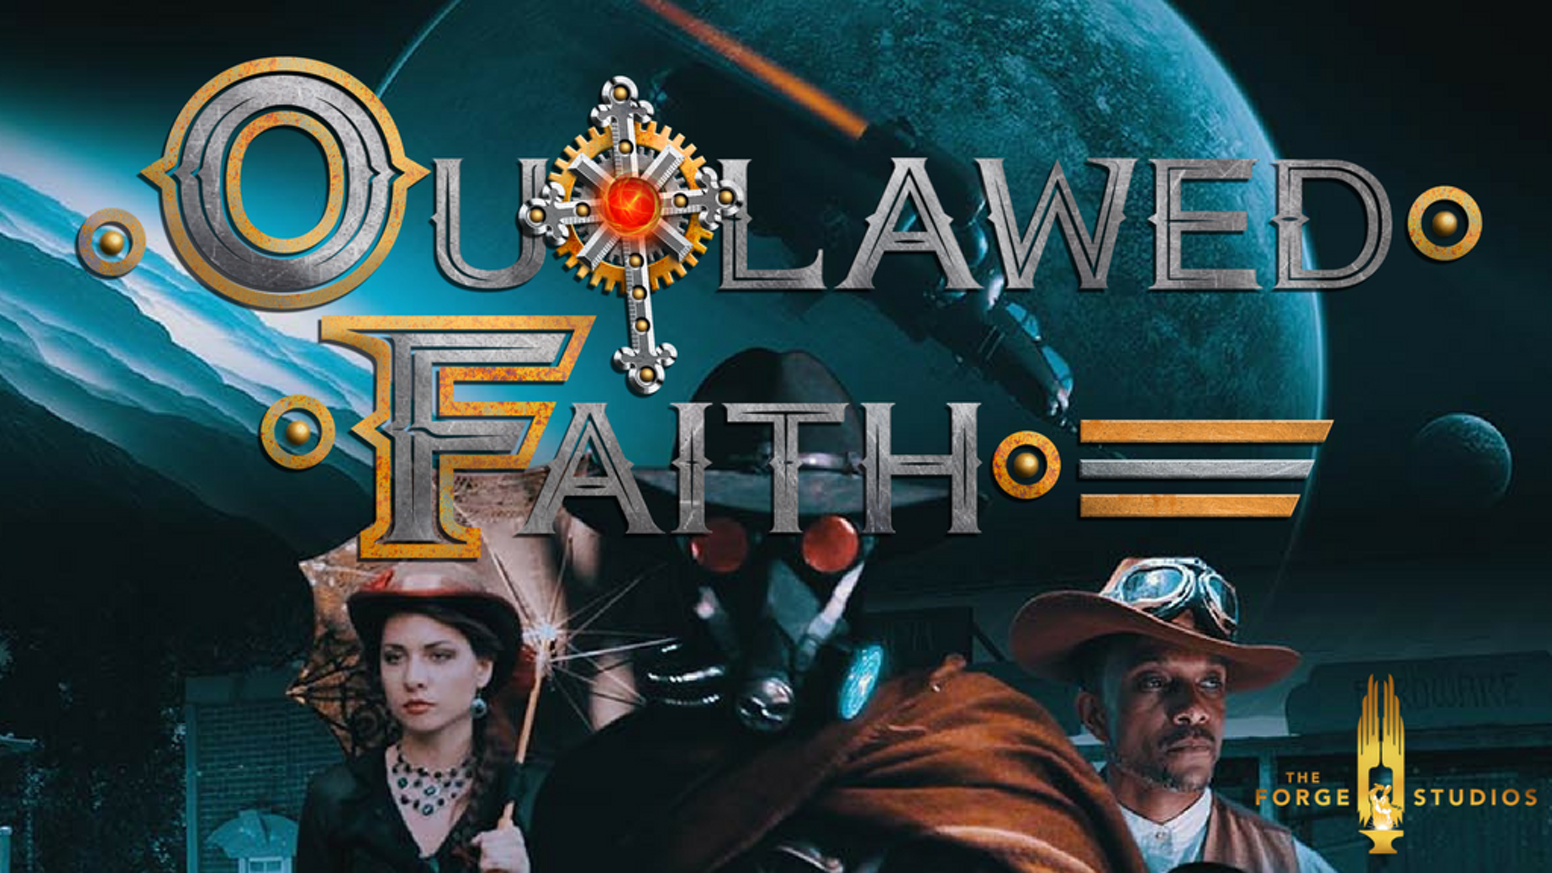 Set in a Steampunk universe with a Sci-fi Western edge, this tale begins a journey of high adventure.